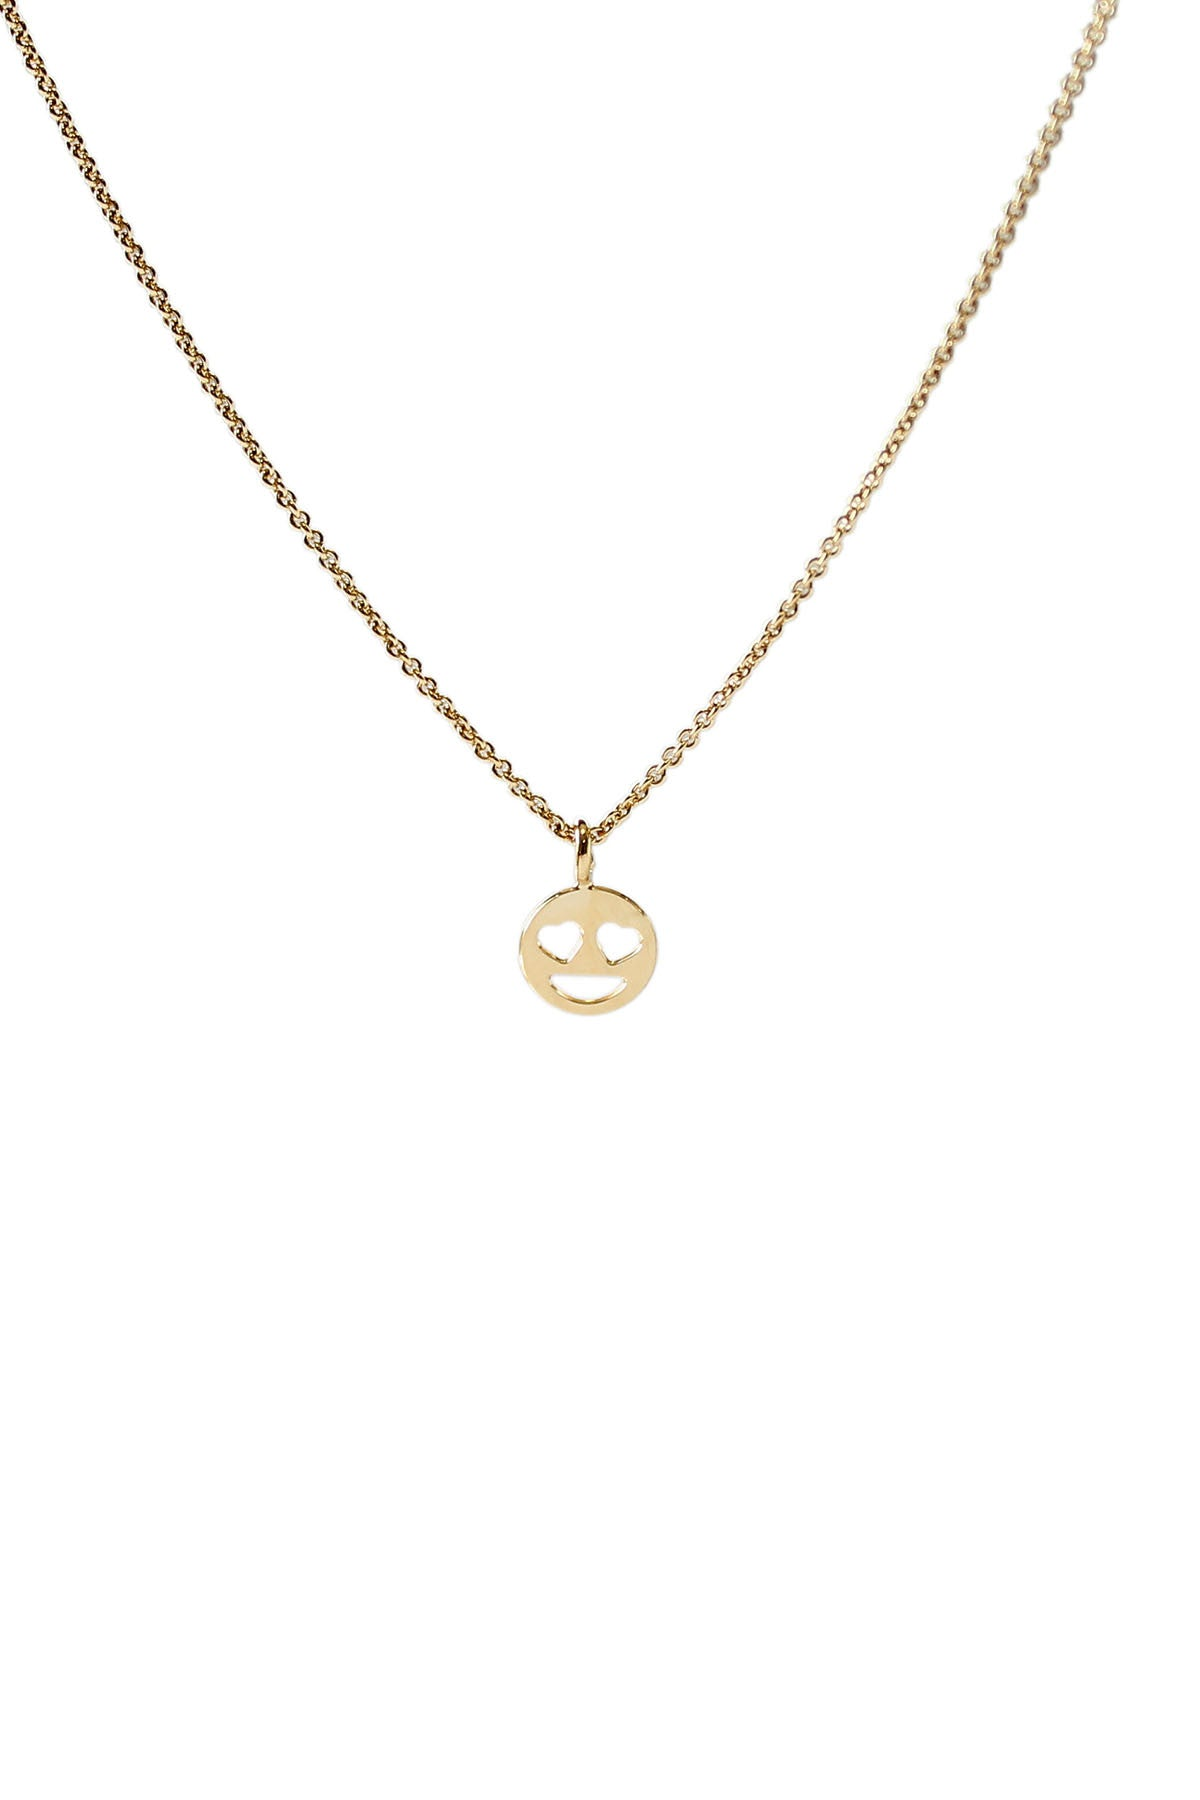 """Heart Eyes"" Emoji Necklace by Kris Nations"